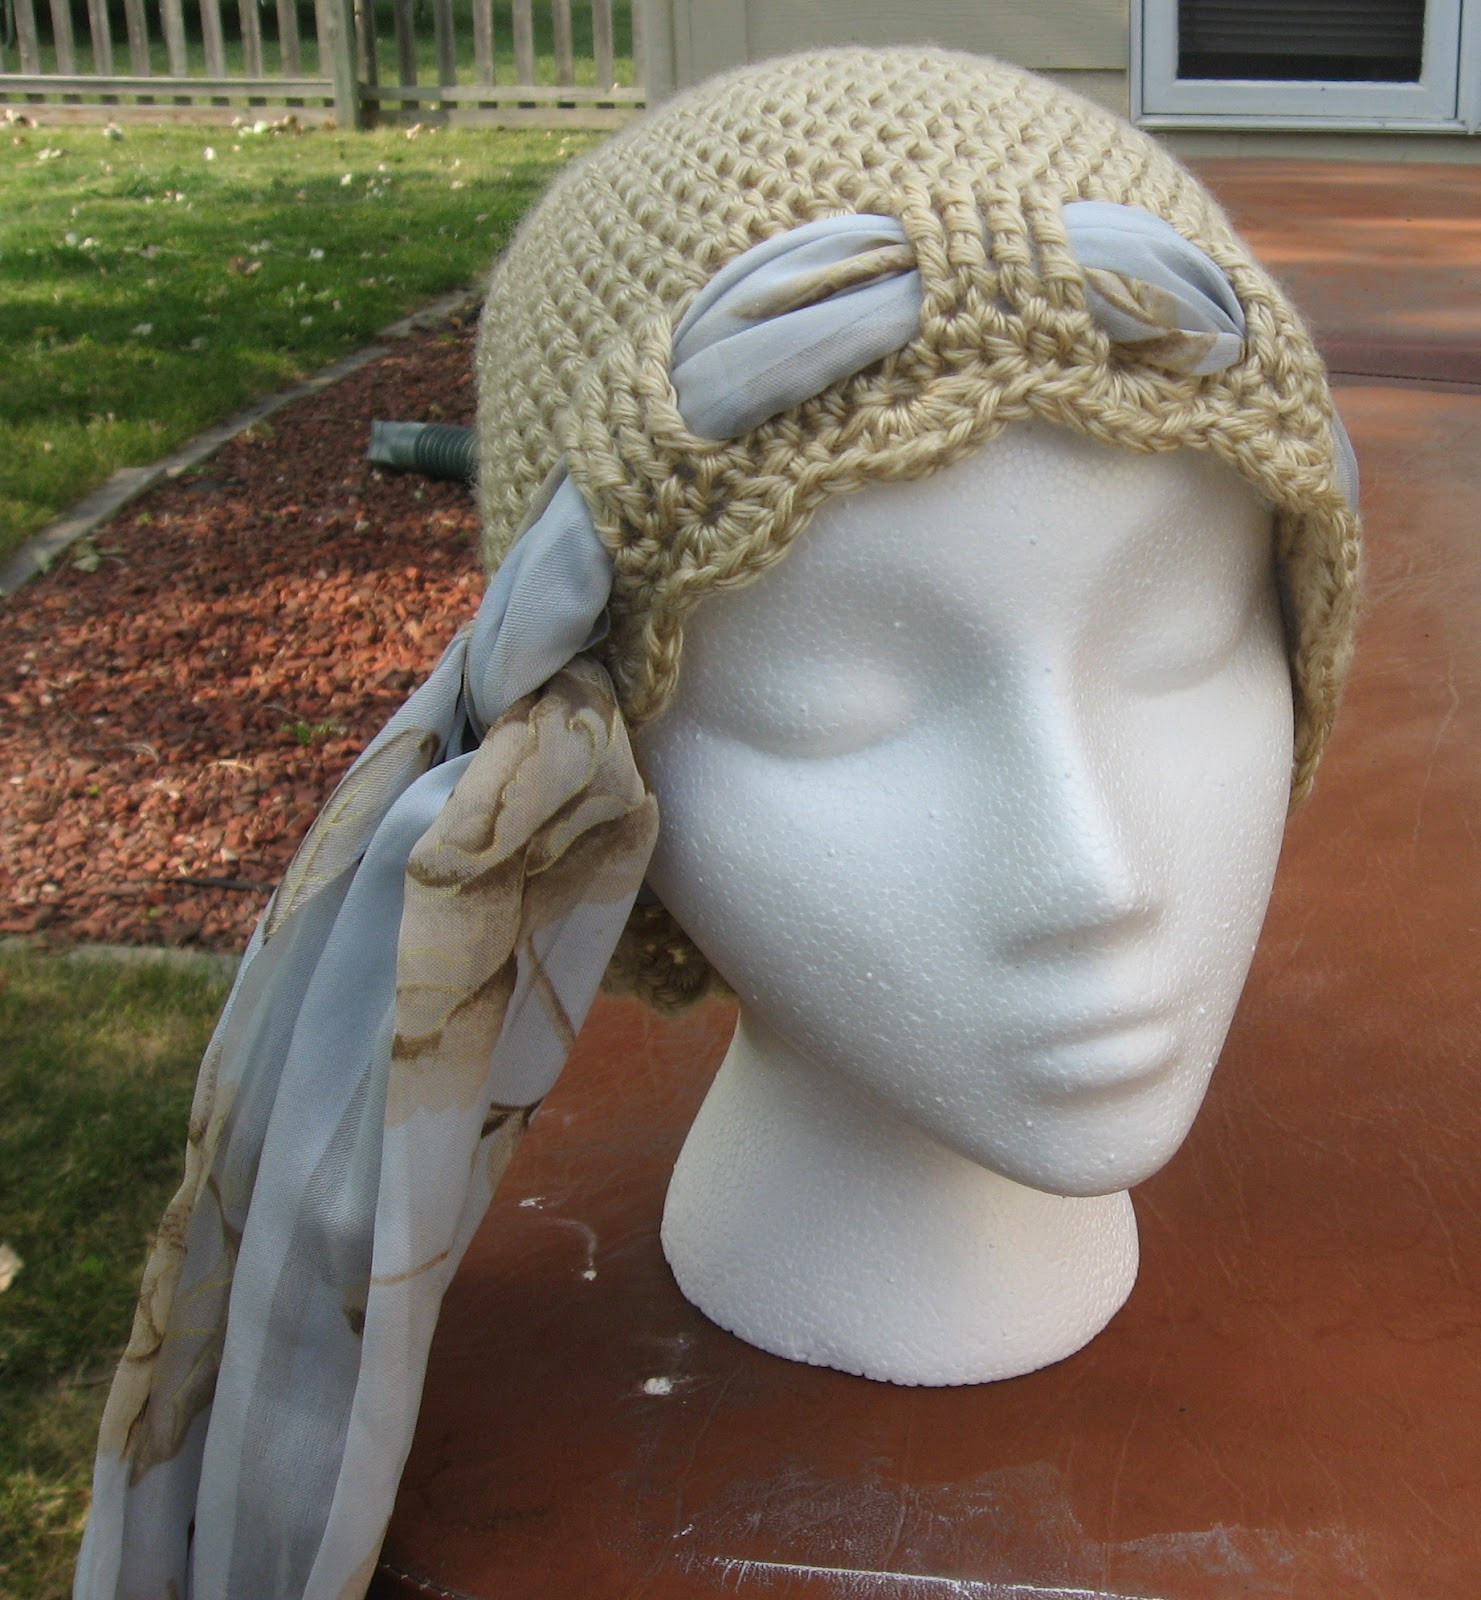 Crochet Chemo Hat Patterns Awesome Crochet Projects Chemo Hats Set 1 Of Luxury 40 Pictures Crochet Chemo Hat Patterns